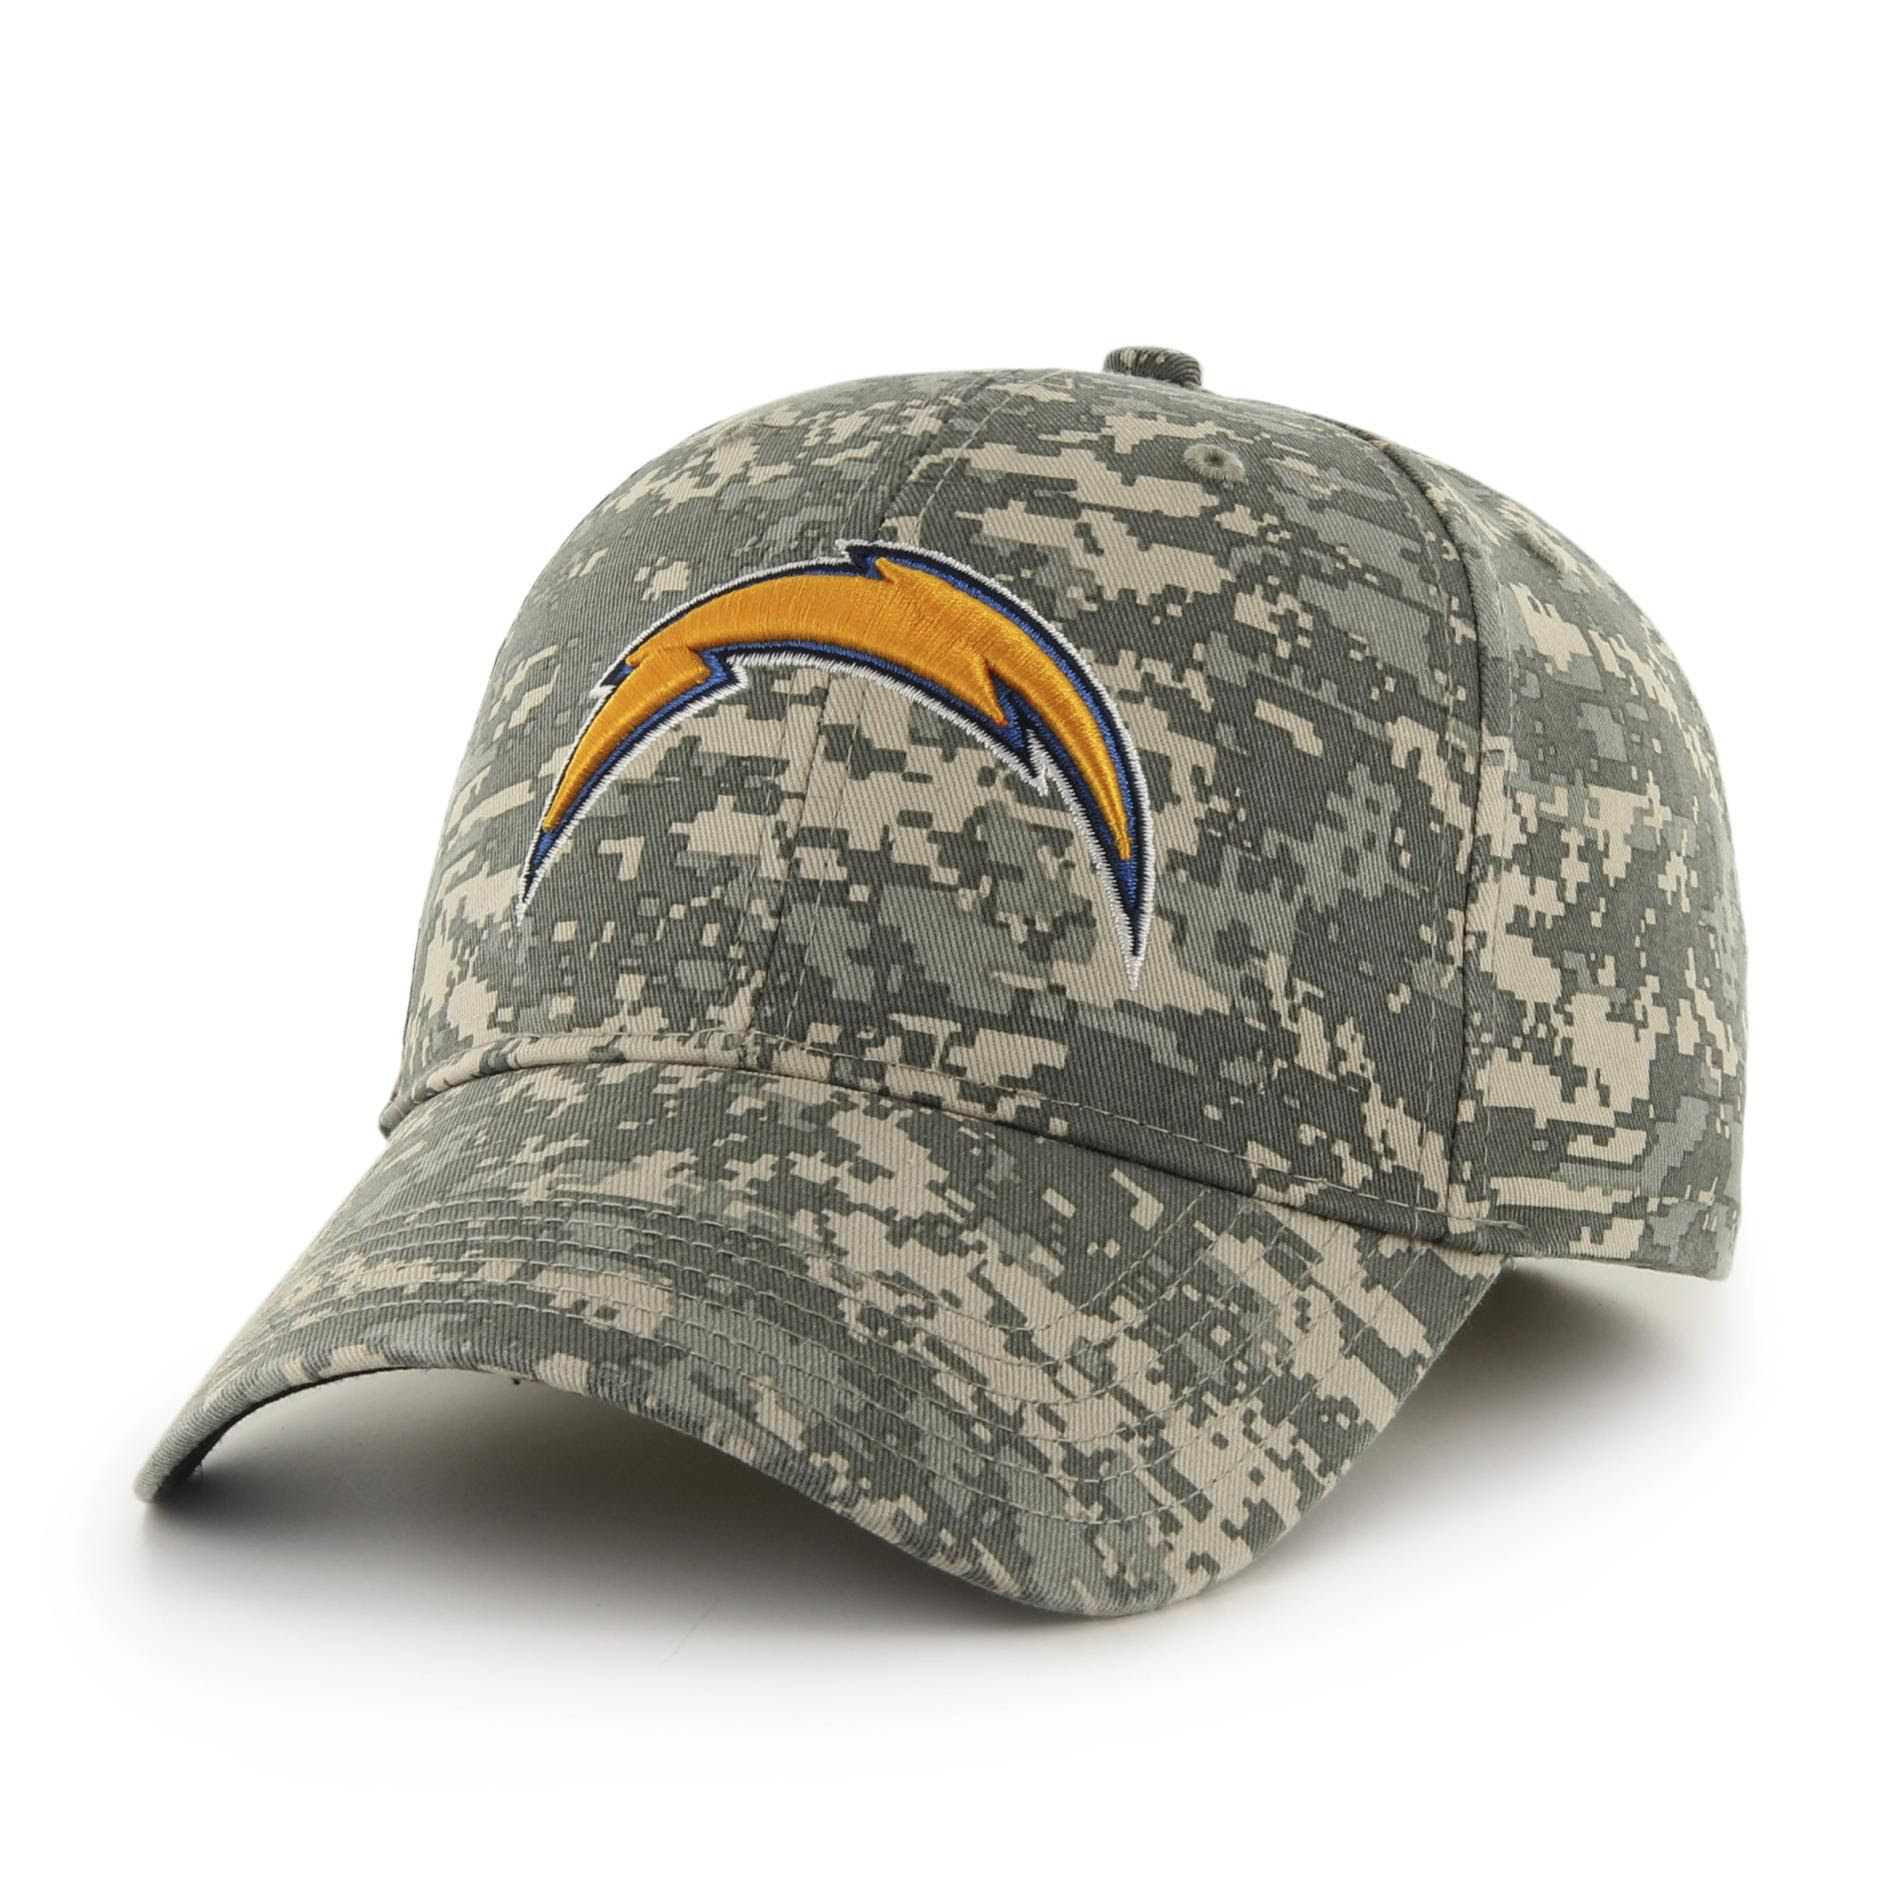 NFL Mens Camo Baseball Hat  San Diego Chargers